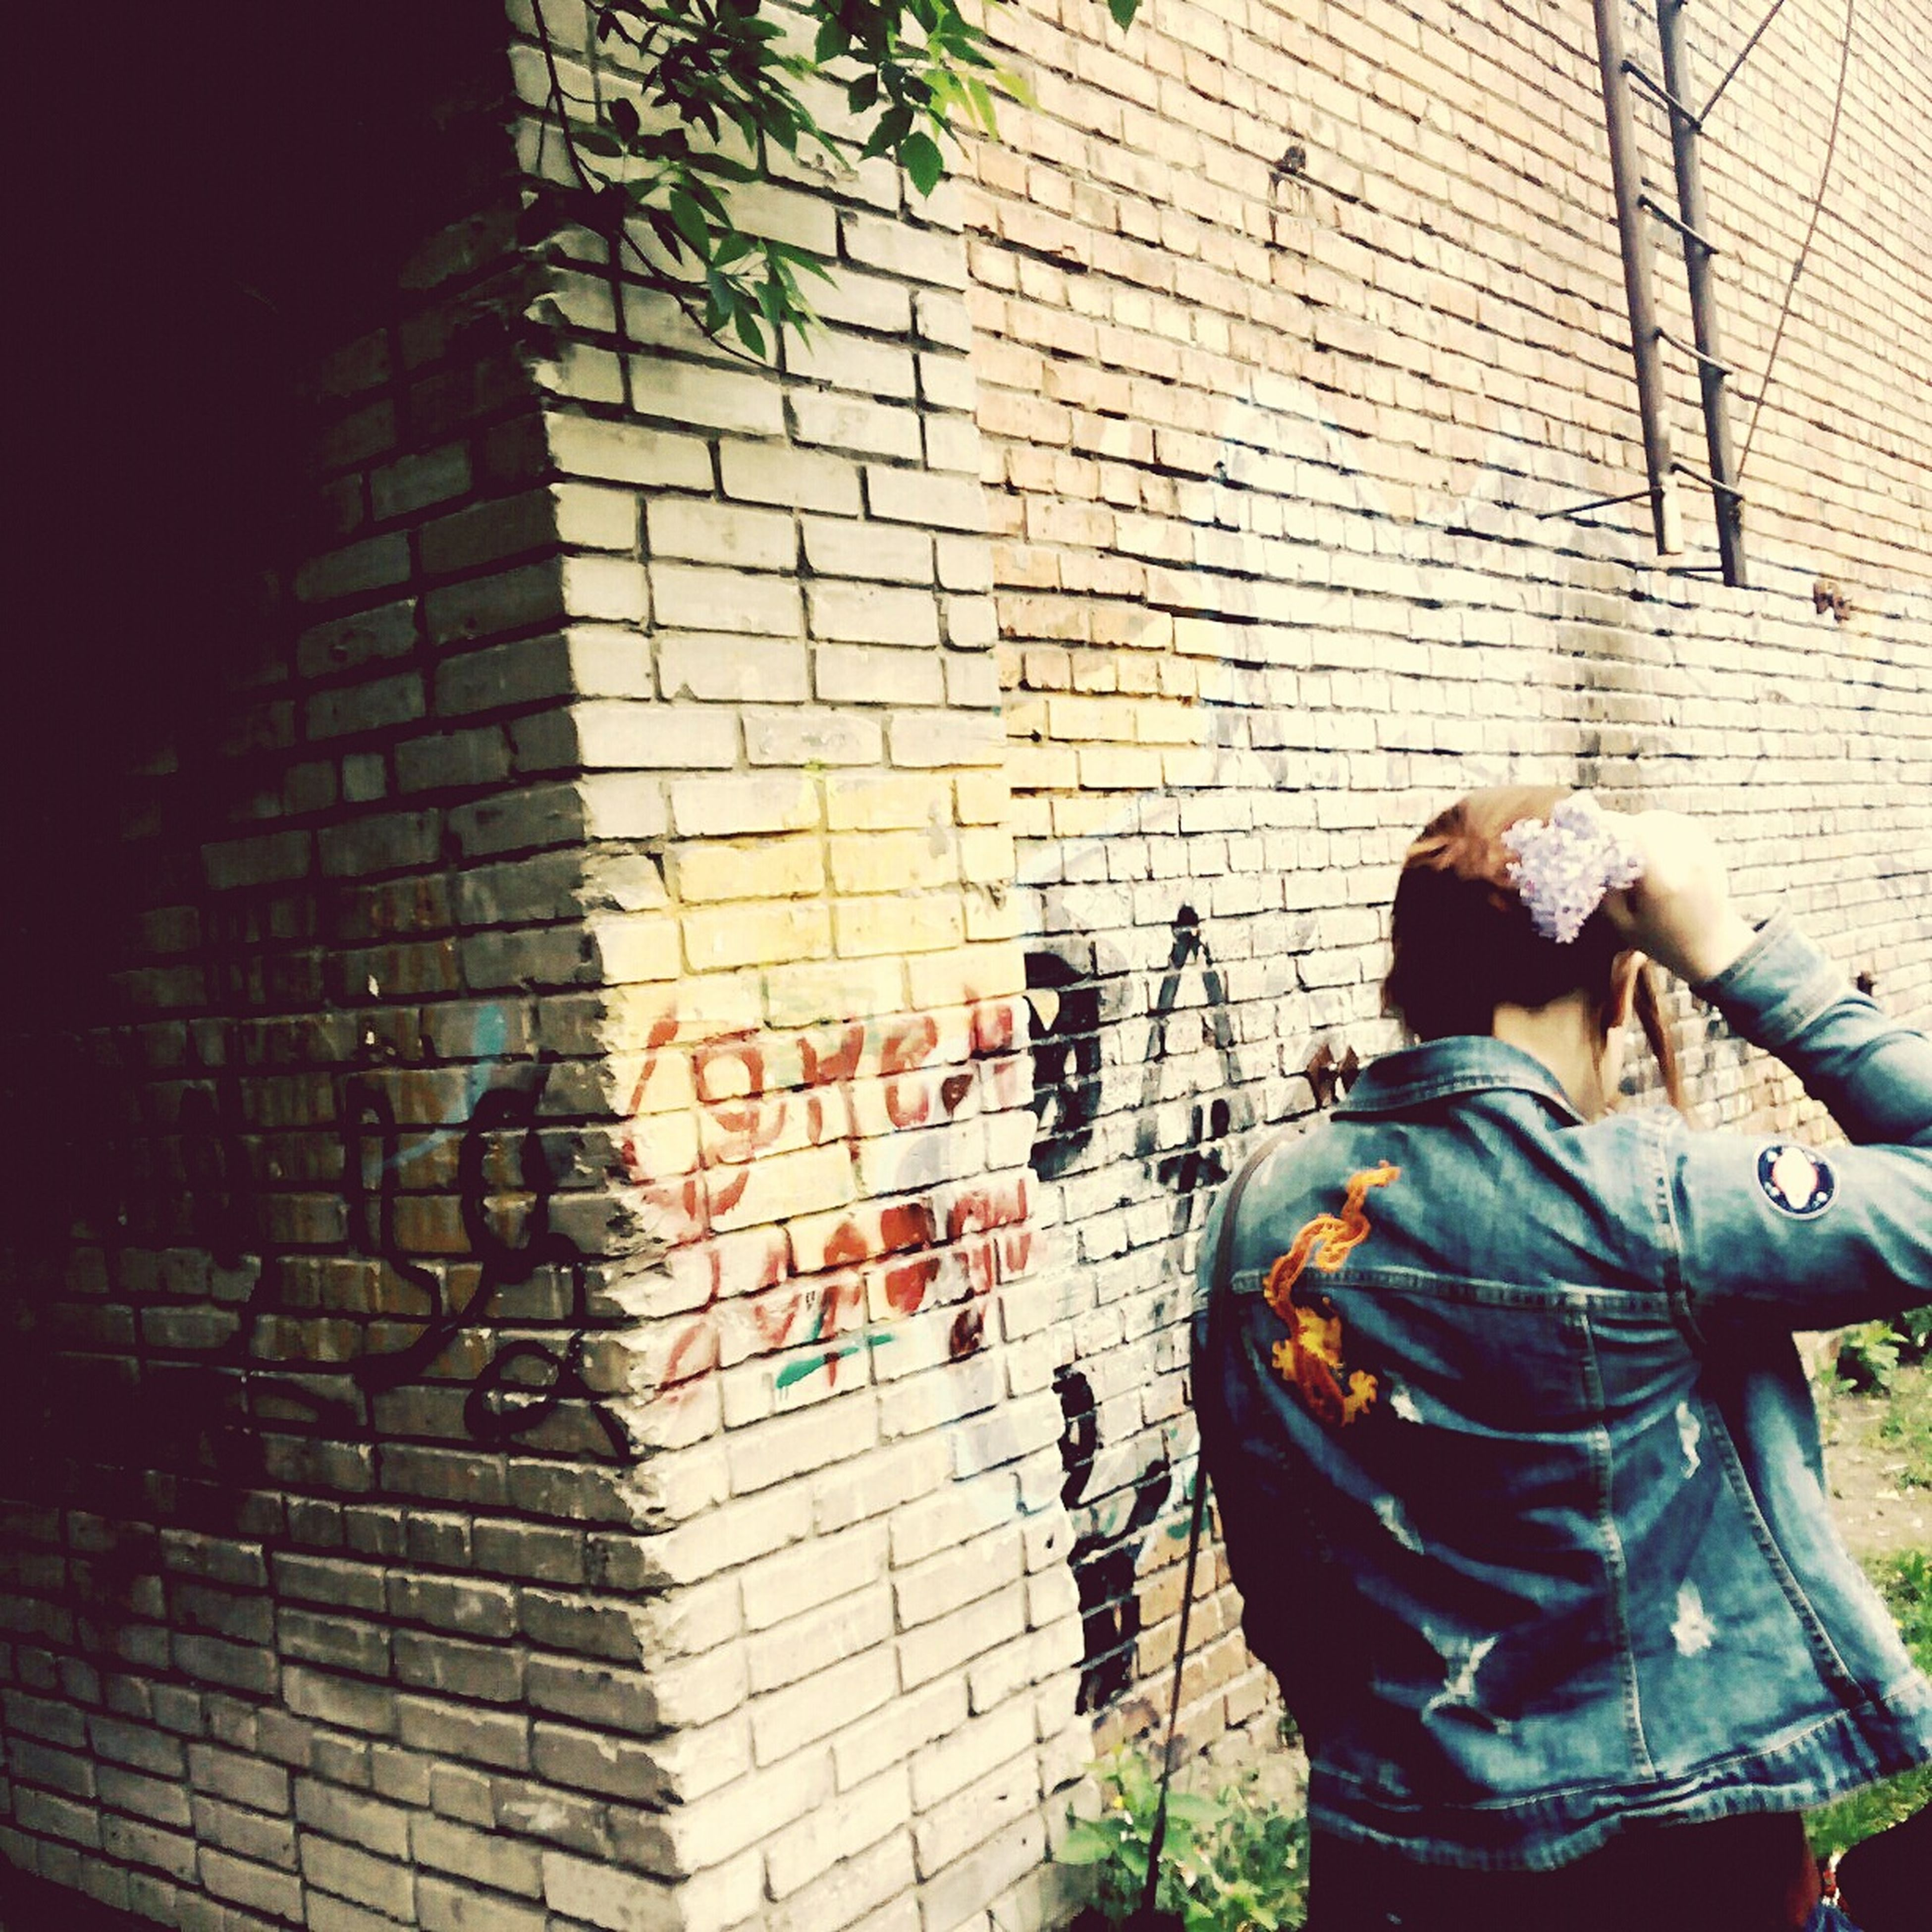 lifestyles, casual clothing, leisure activity, built structure, men, architecture, building exterior, standing, rear view, graffiti, wall - building feature, full length, three quarter length, young adult, communication, outdoors, day